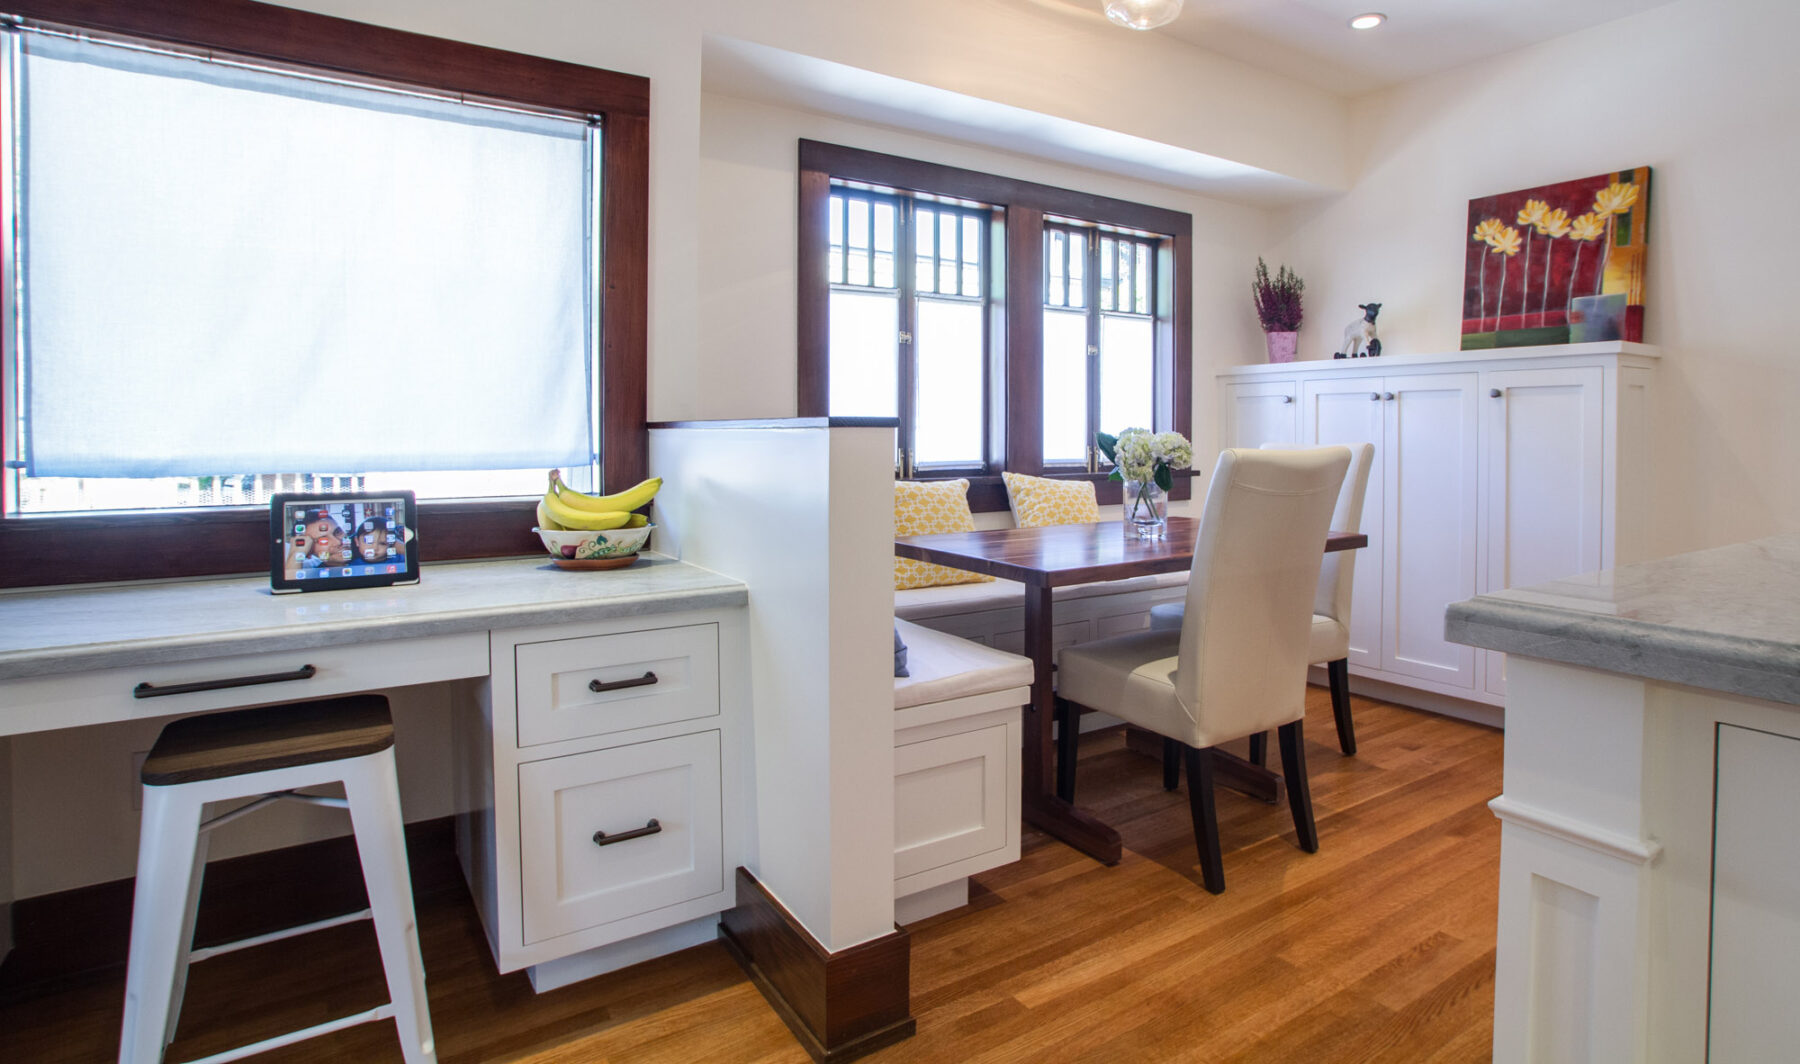 An integrated desk and breakfast nook in the Kitchen.